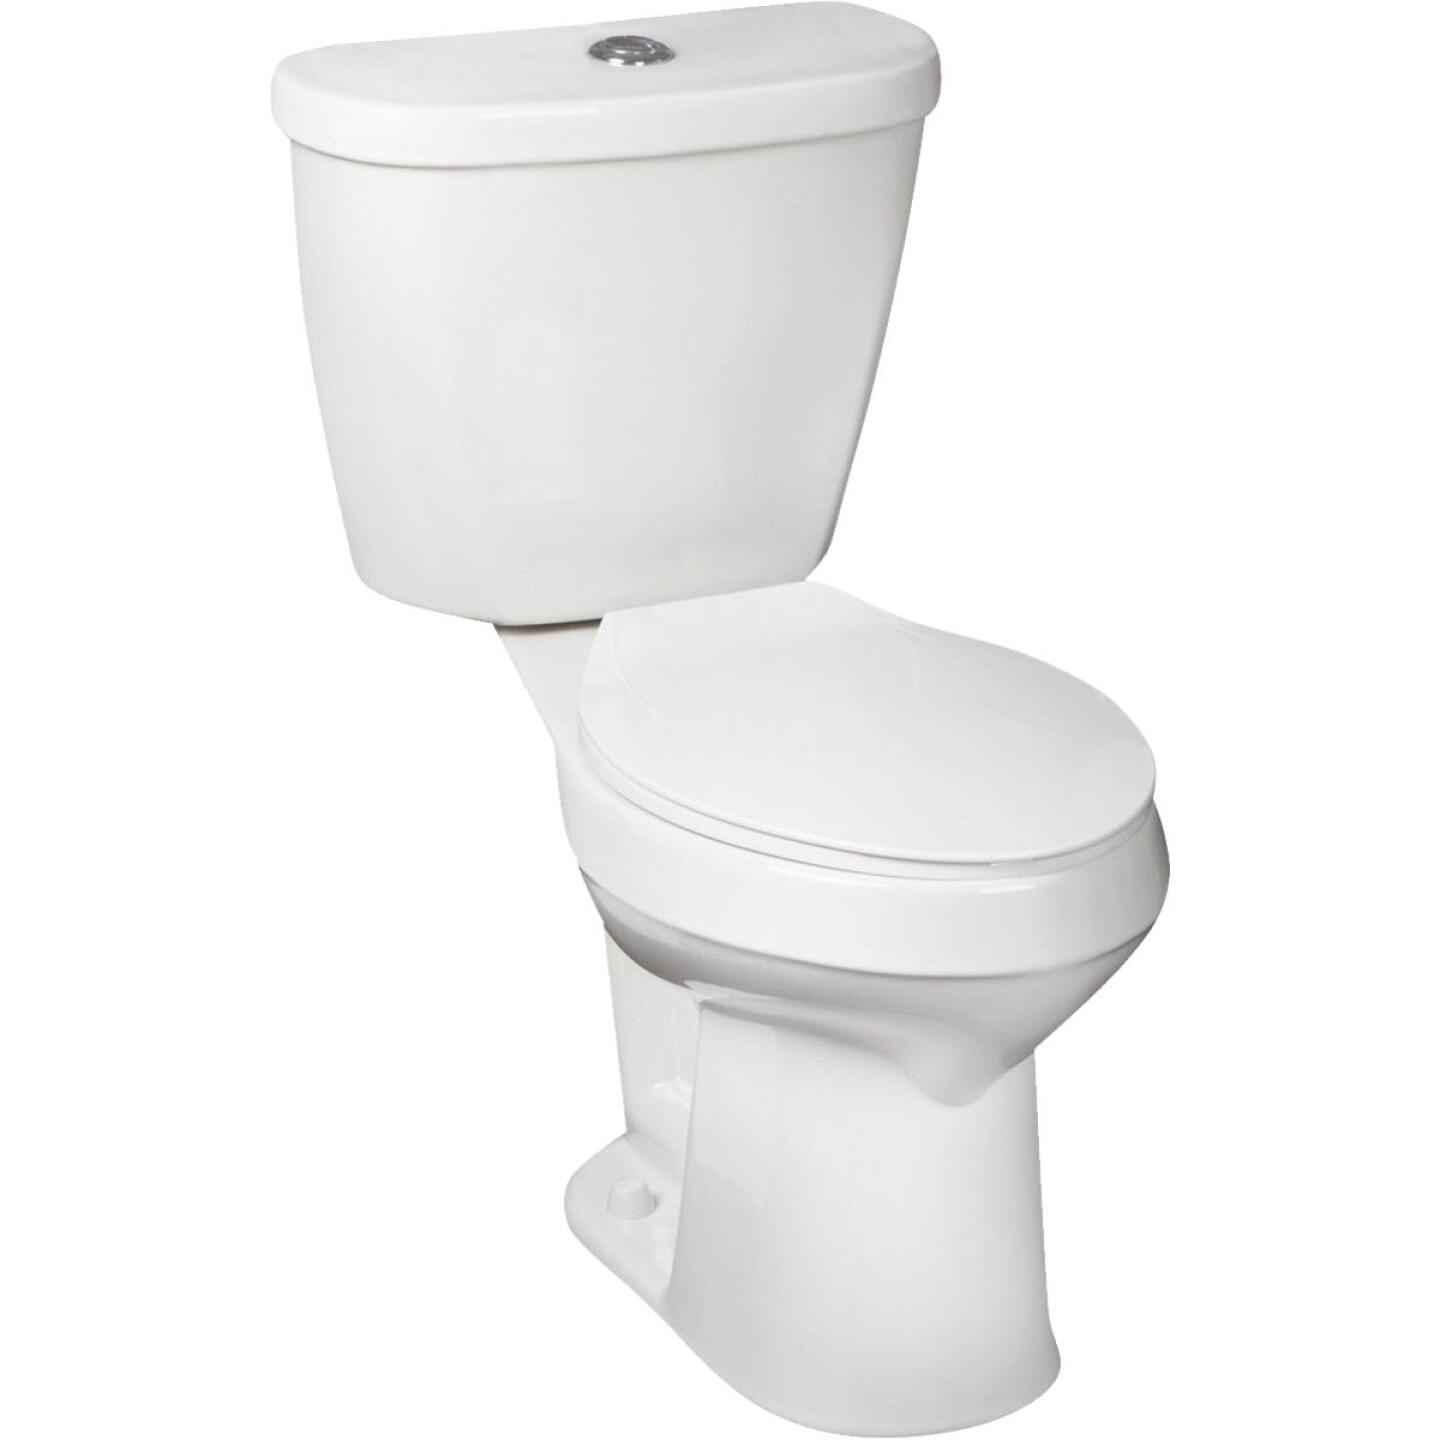 Mansfield Summit SmartHeight White Elongated Bowl 1.1 or 1.6 GPF Dual Flush Toilet Kit Image 2